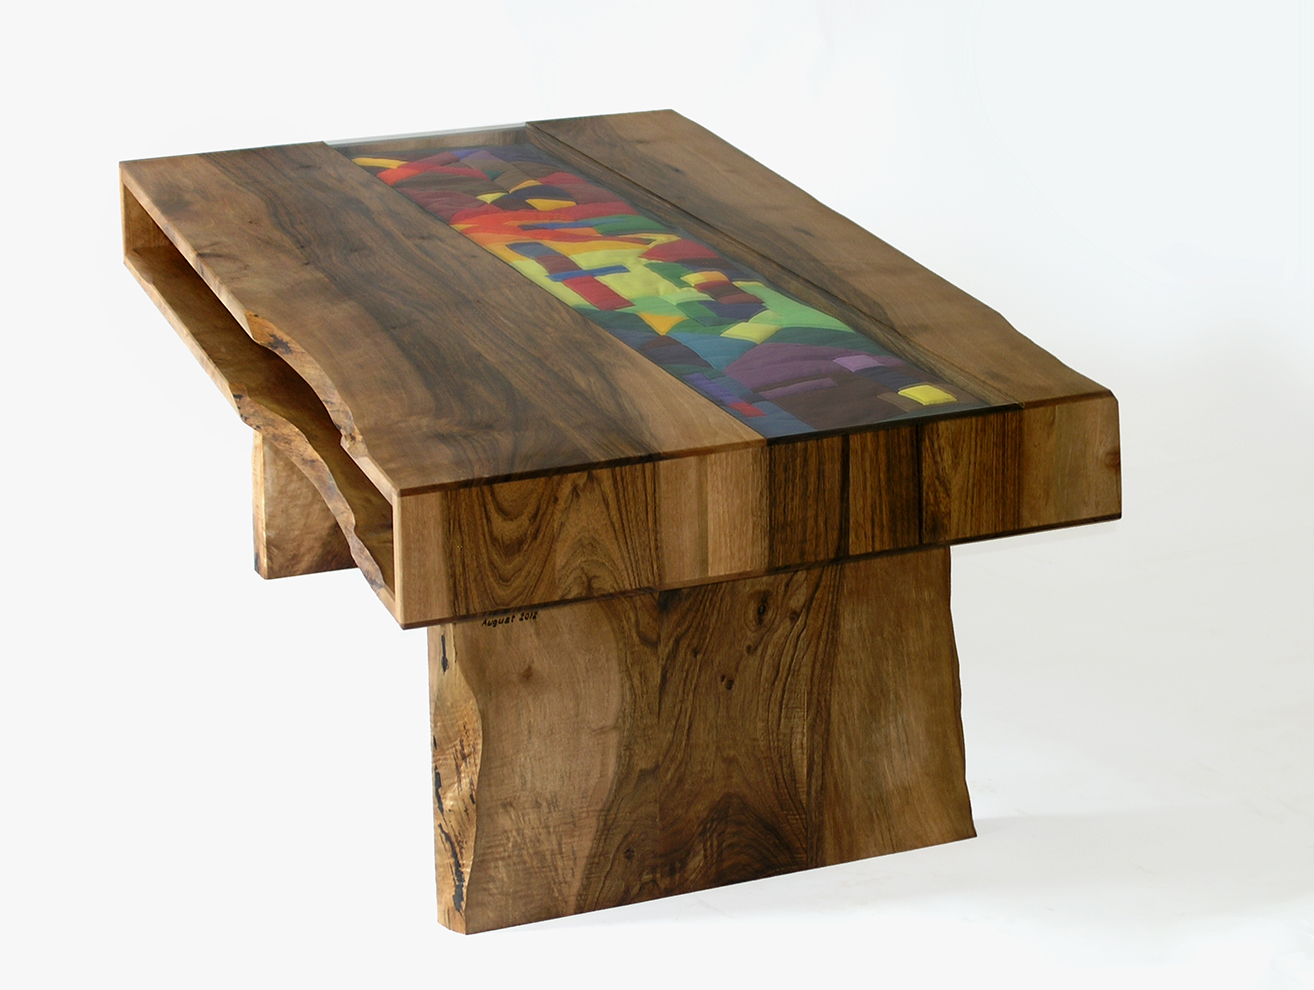 Mapleart custom wood furniture vancouver bcaconitum for Coffee tables vancouver canada